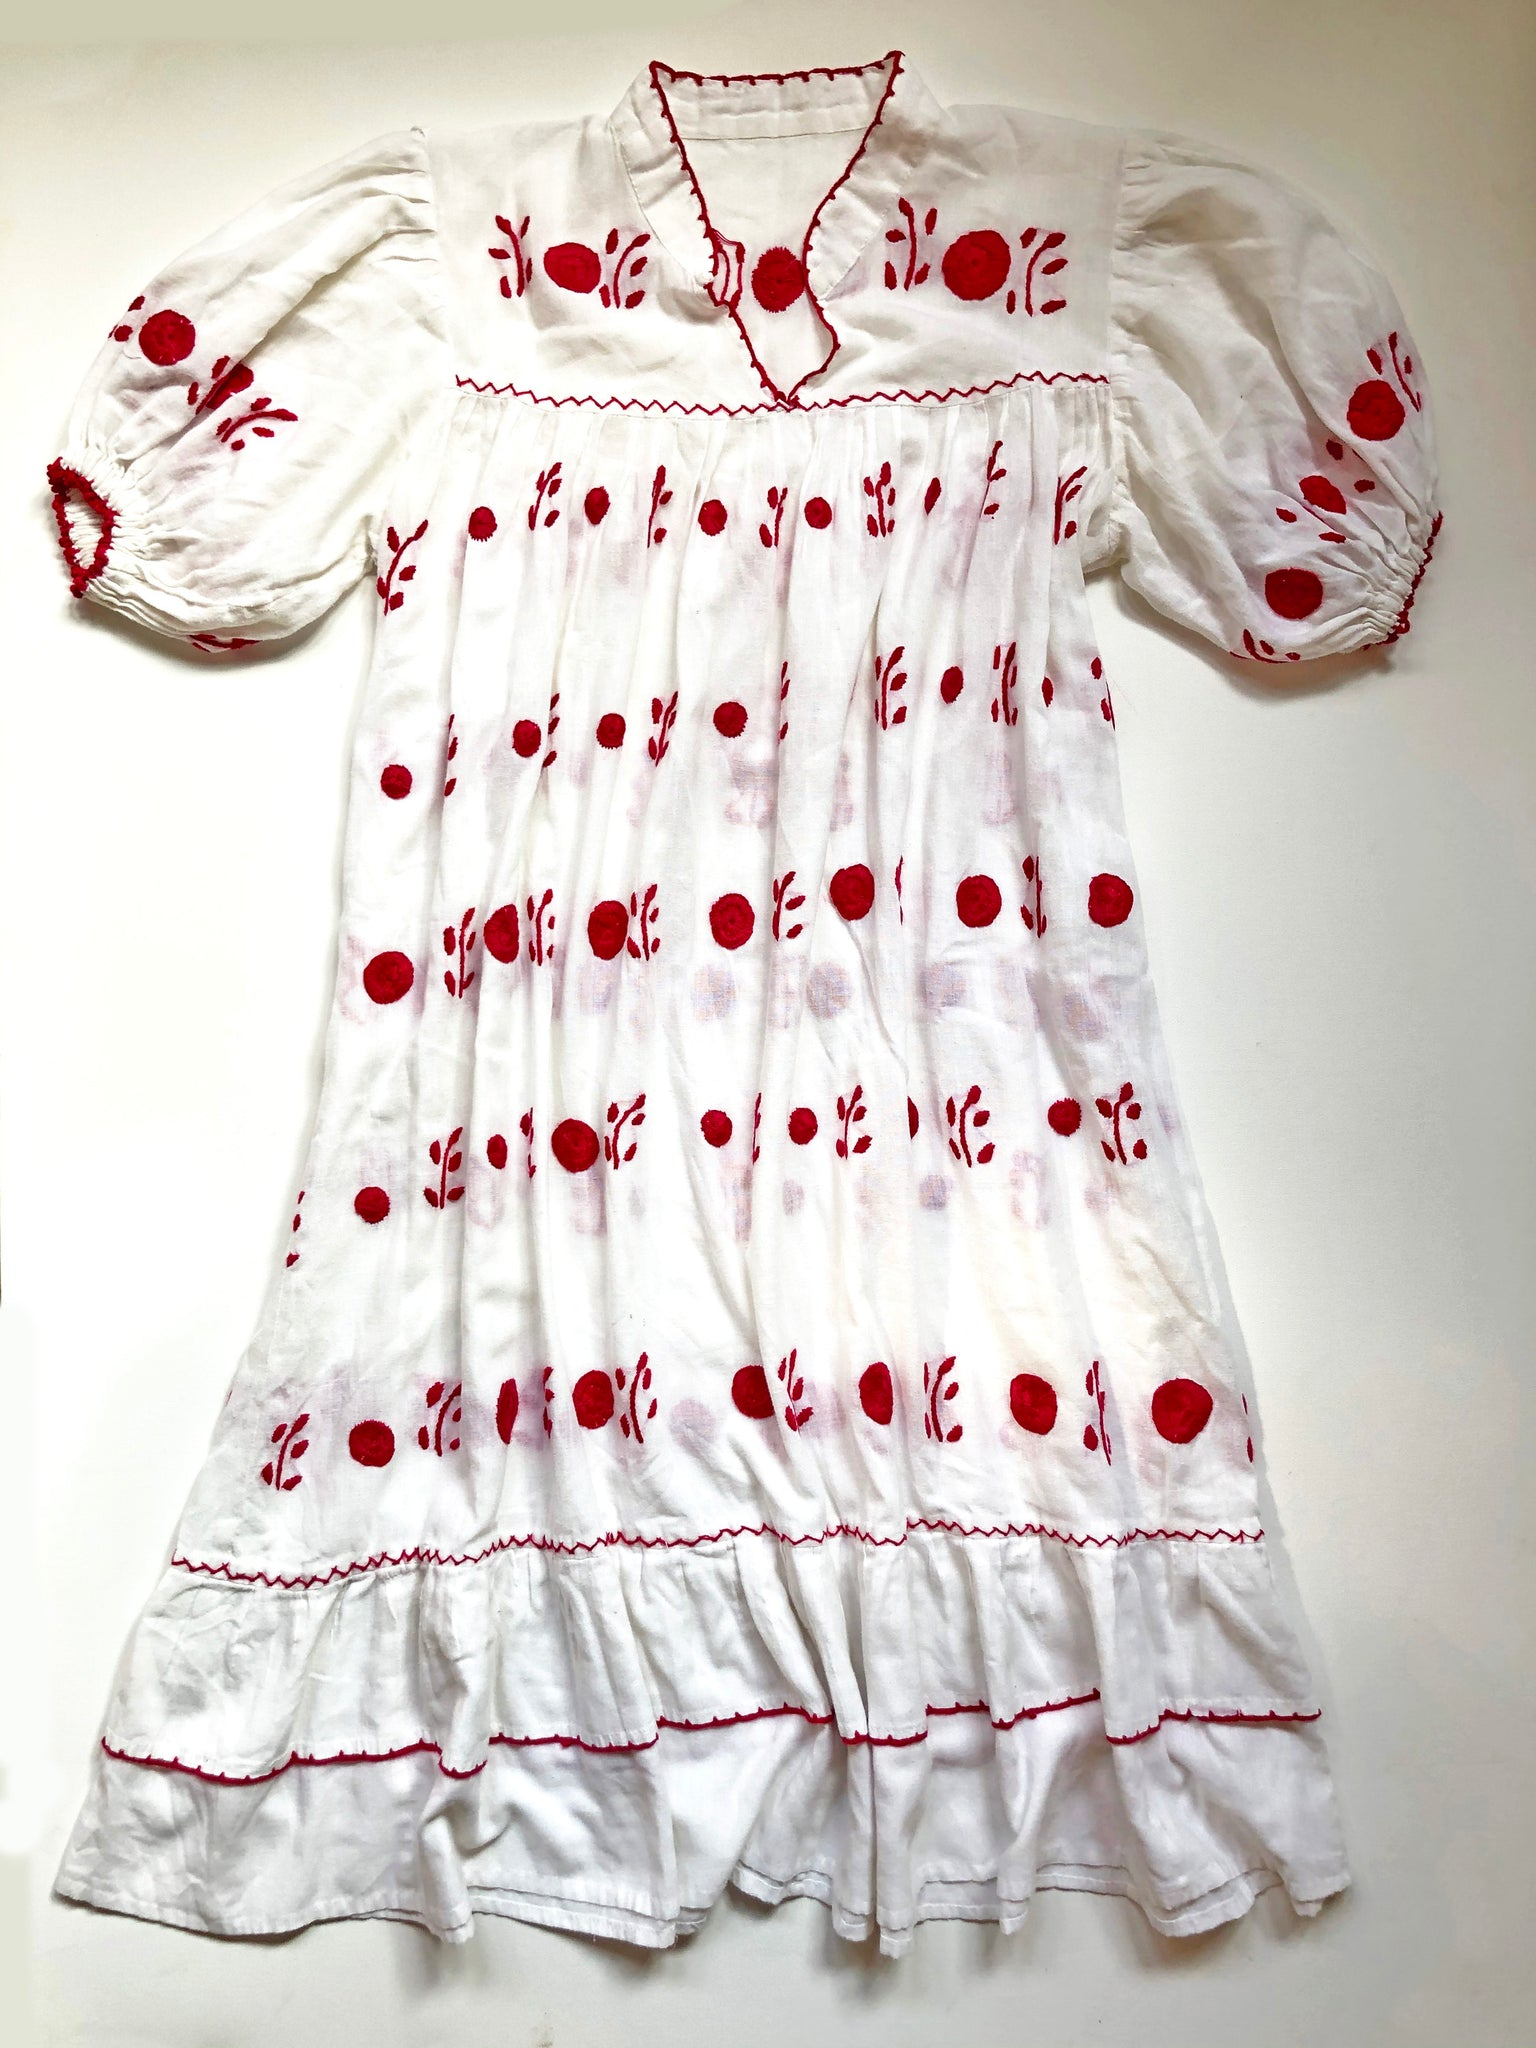 Vintage Hand-Embroidered Cotton Dress